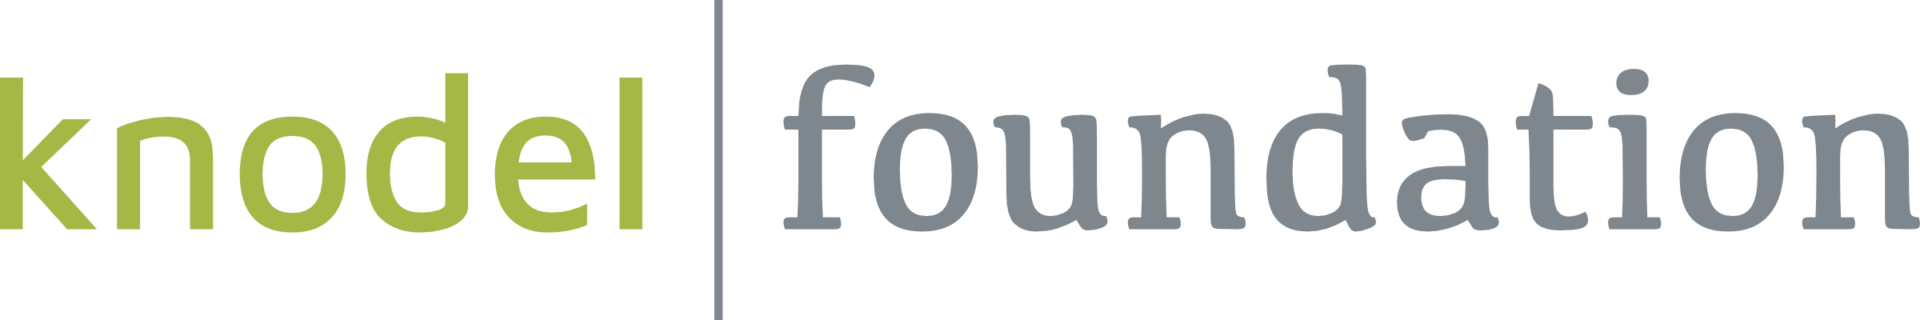 knodel foundation logo